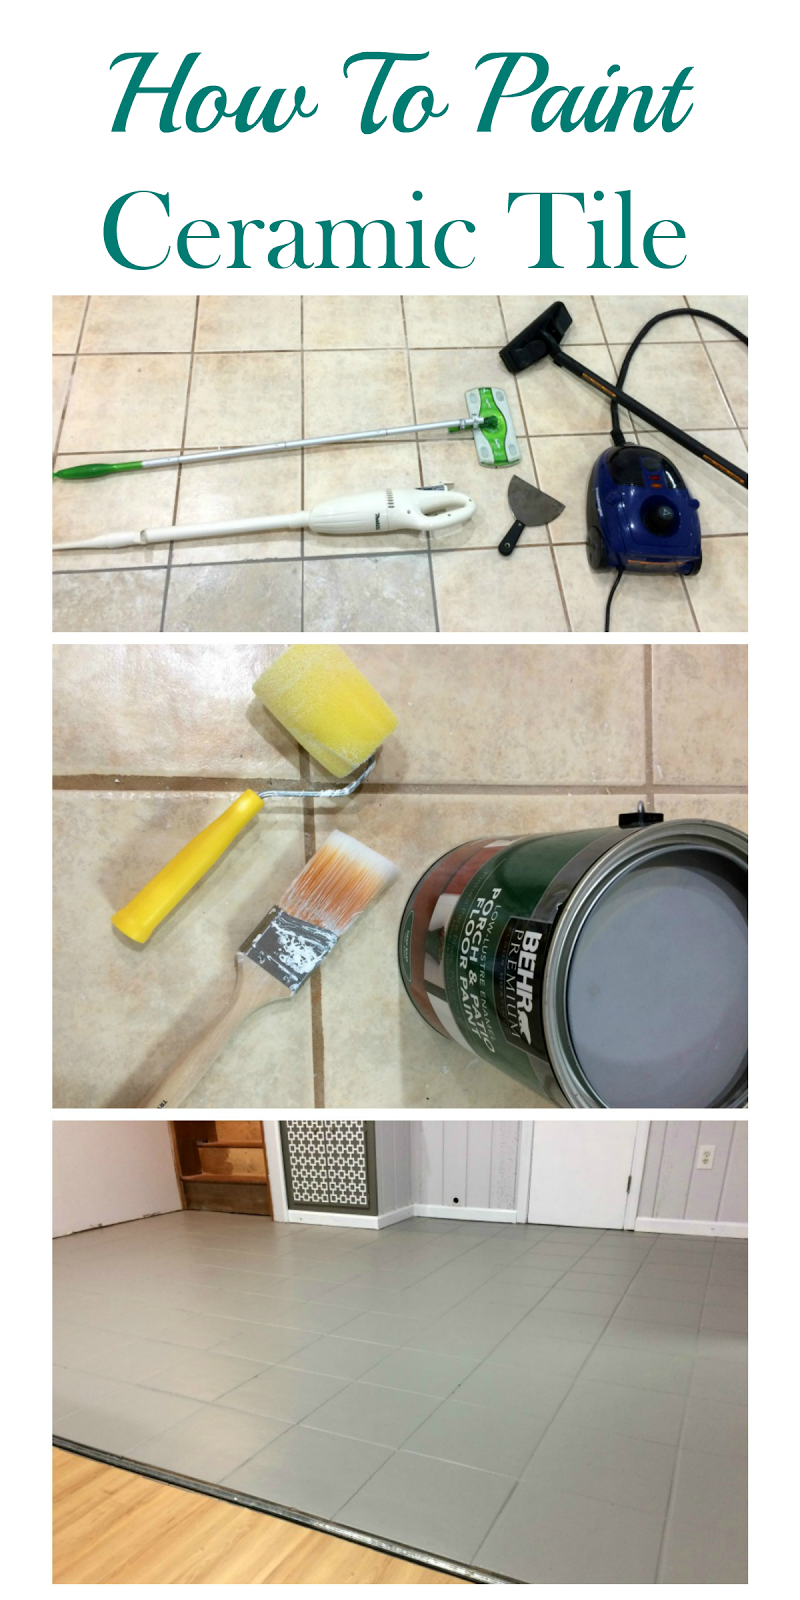 Real girls realm how to clean and paint ceramic tile hate your ceramic tile you do not have to tear it out just paint dailygadgetfo Gallery